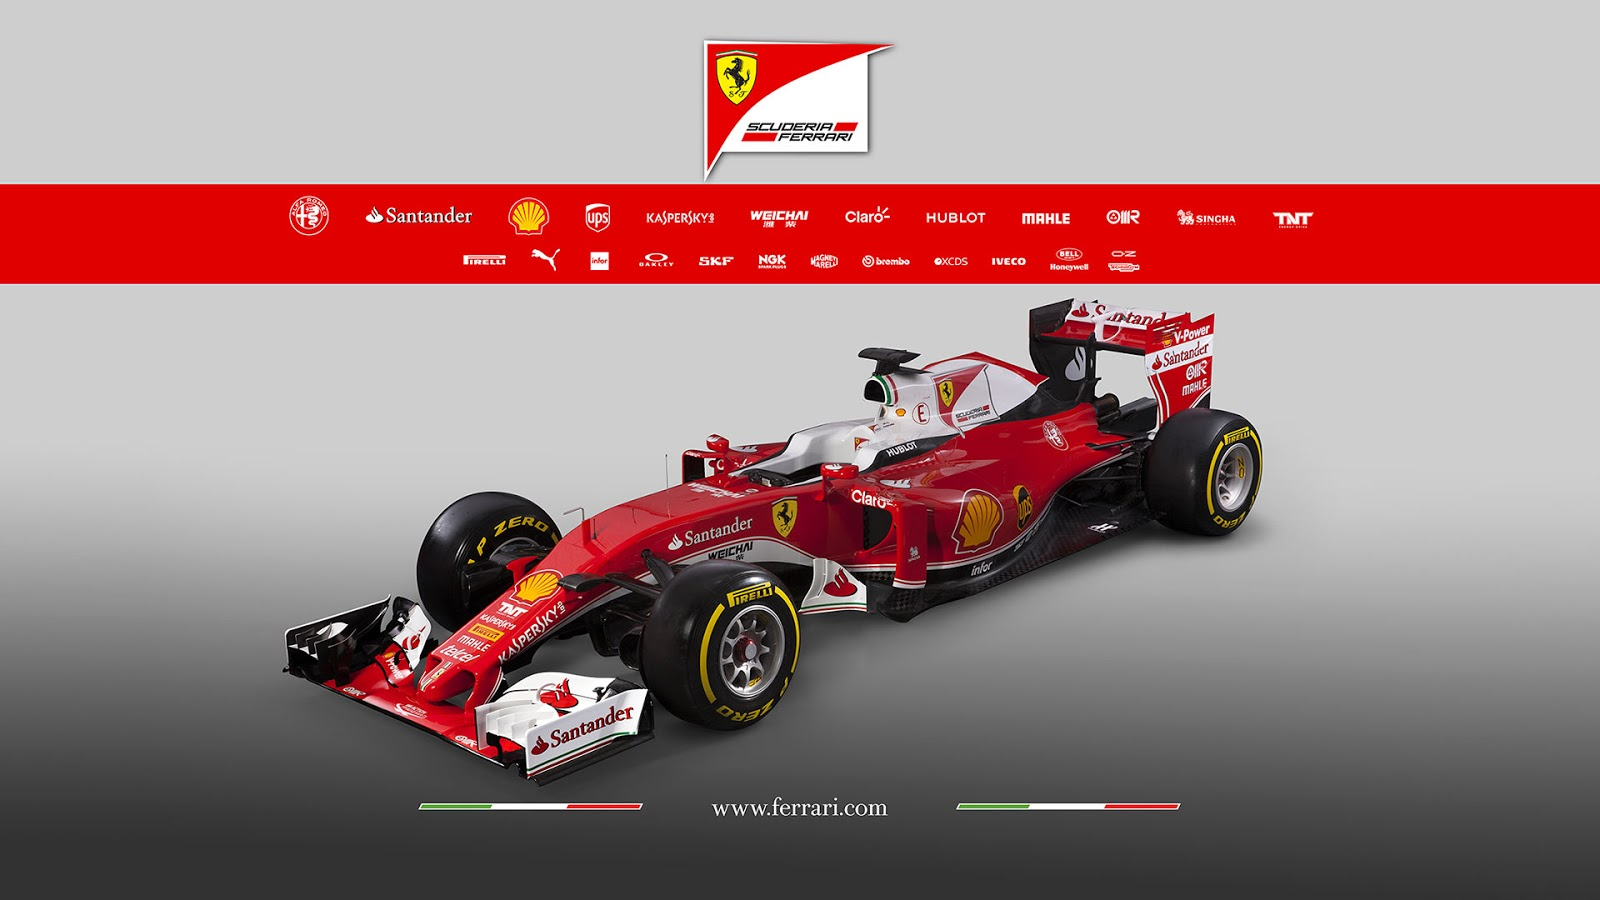 ferrari sf16-h 2016 f1 wallpaper - kfzoom